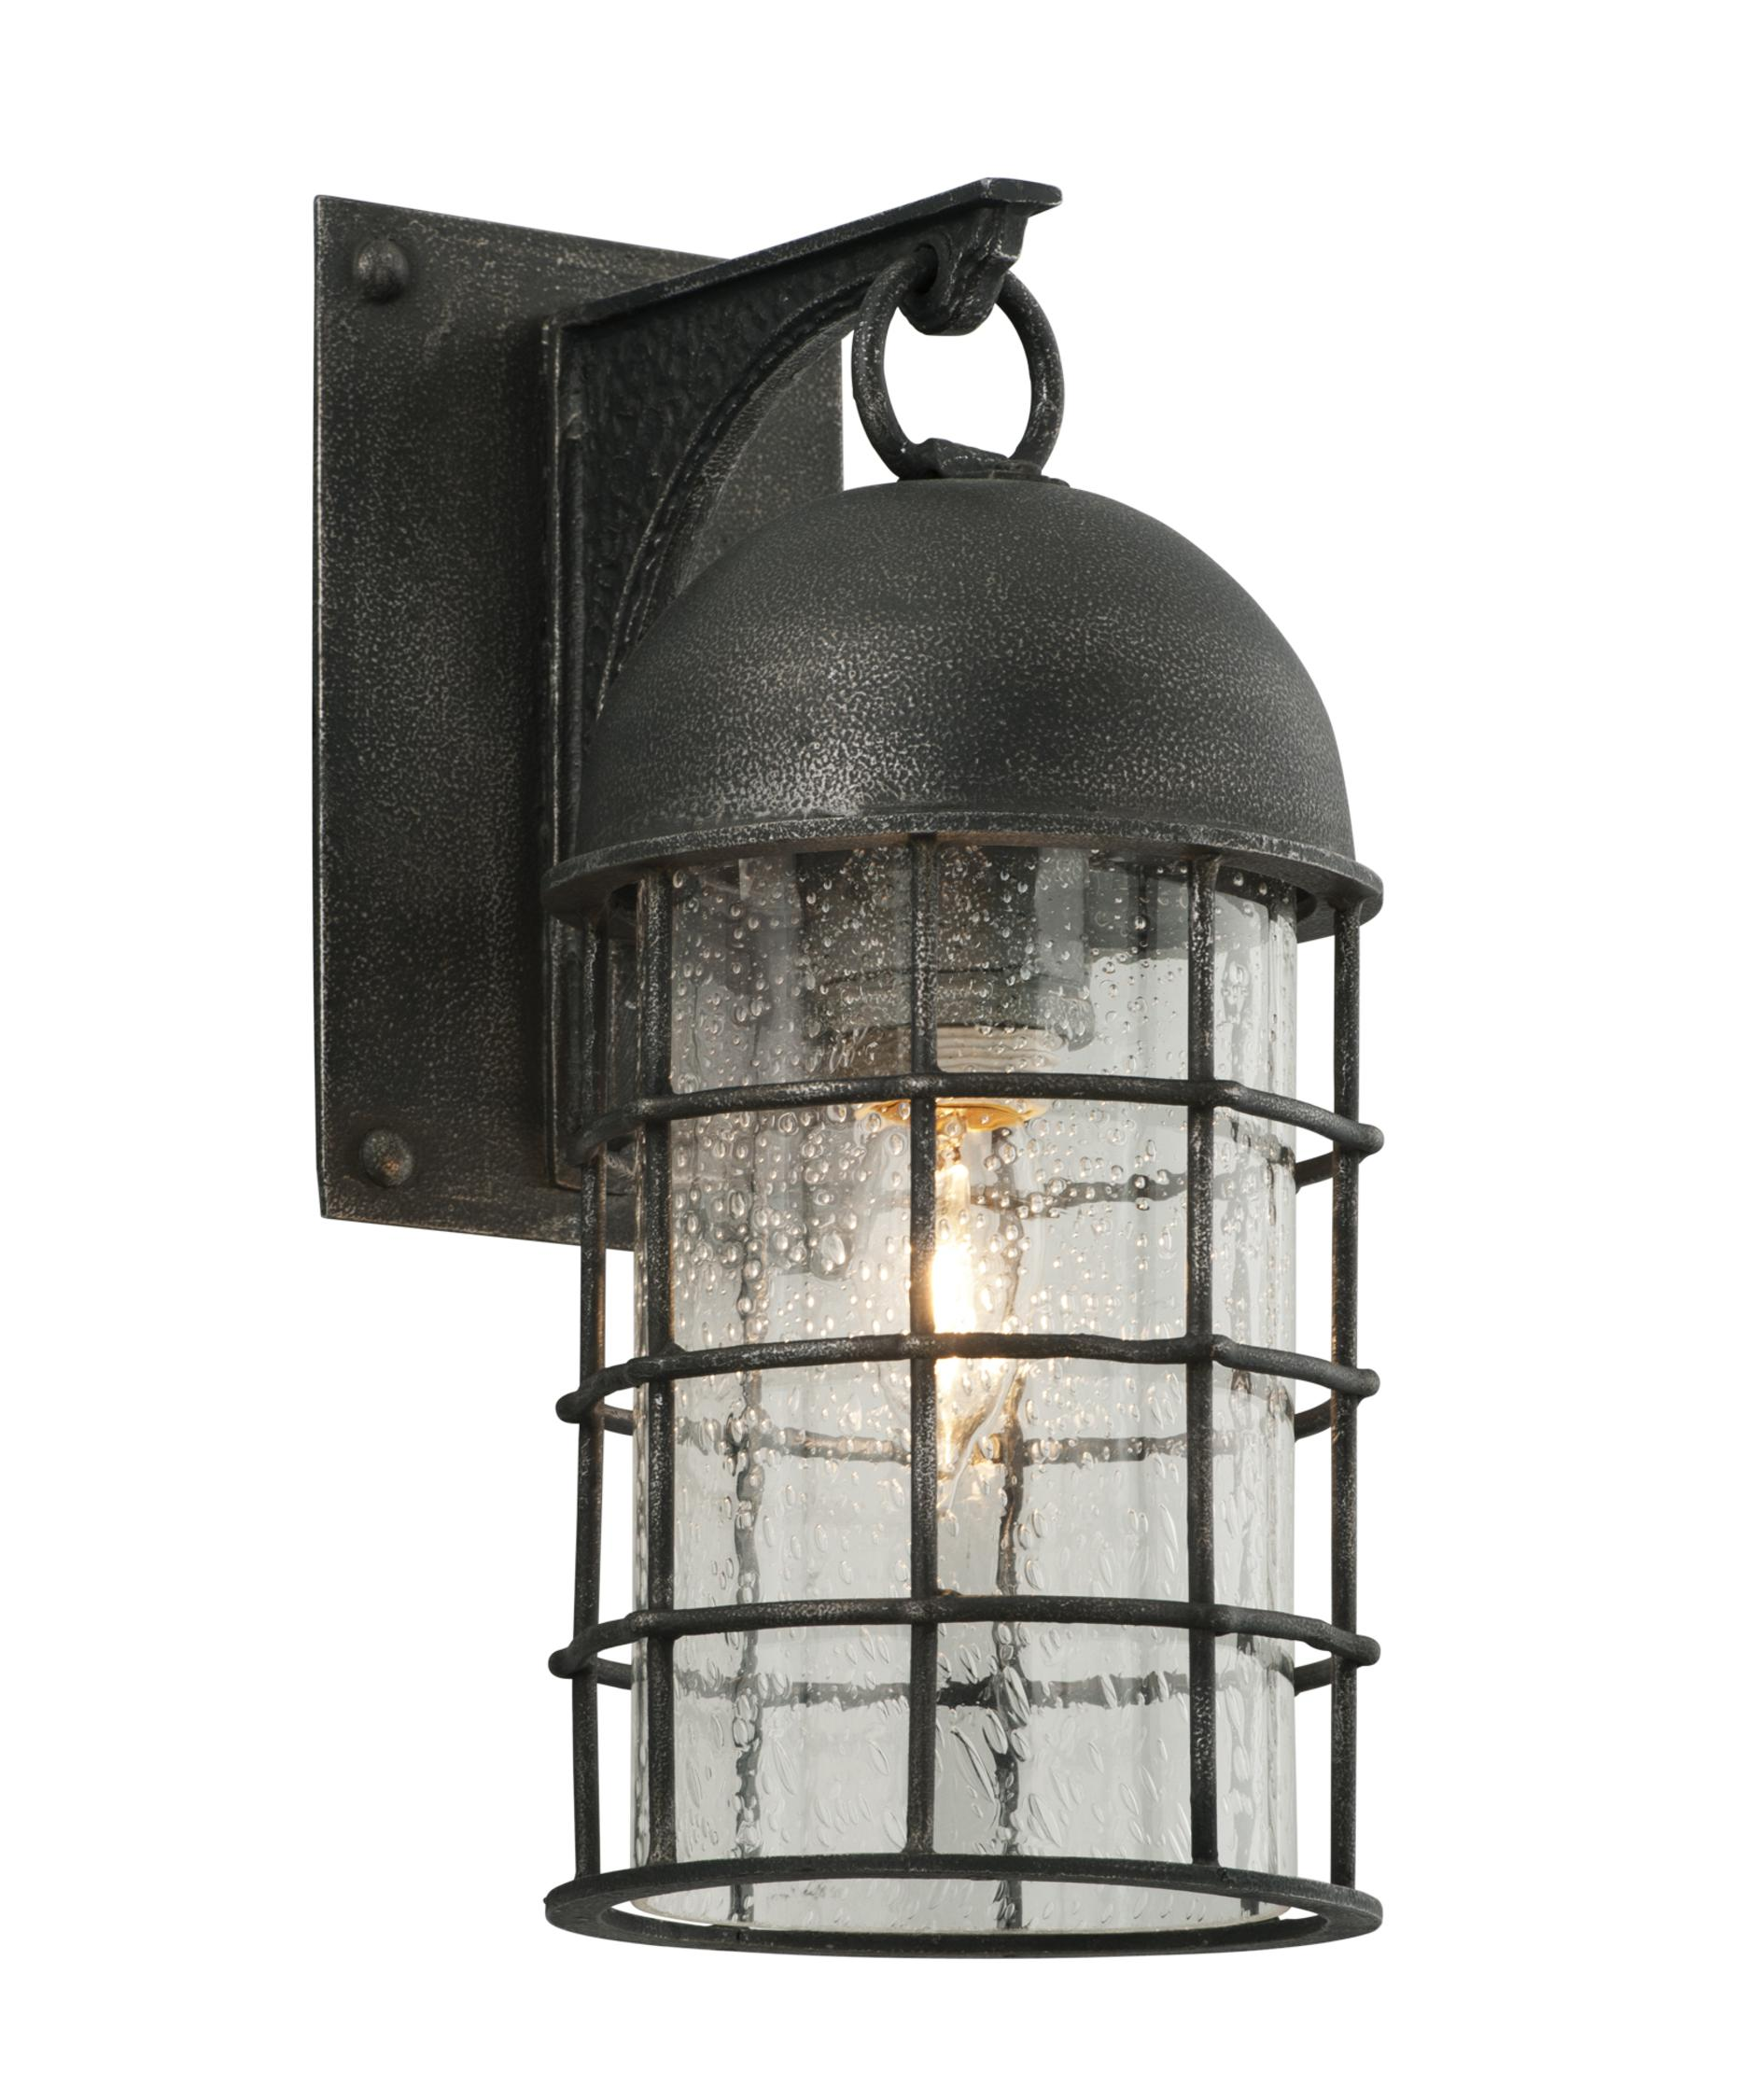 Troy Lighting B4431 Charlemagne 6 Inch Wide 1 Light Outdoor Wall Light |  Capitol Lighting 1 800lighting.com